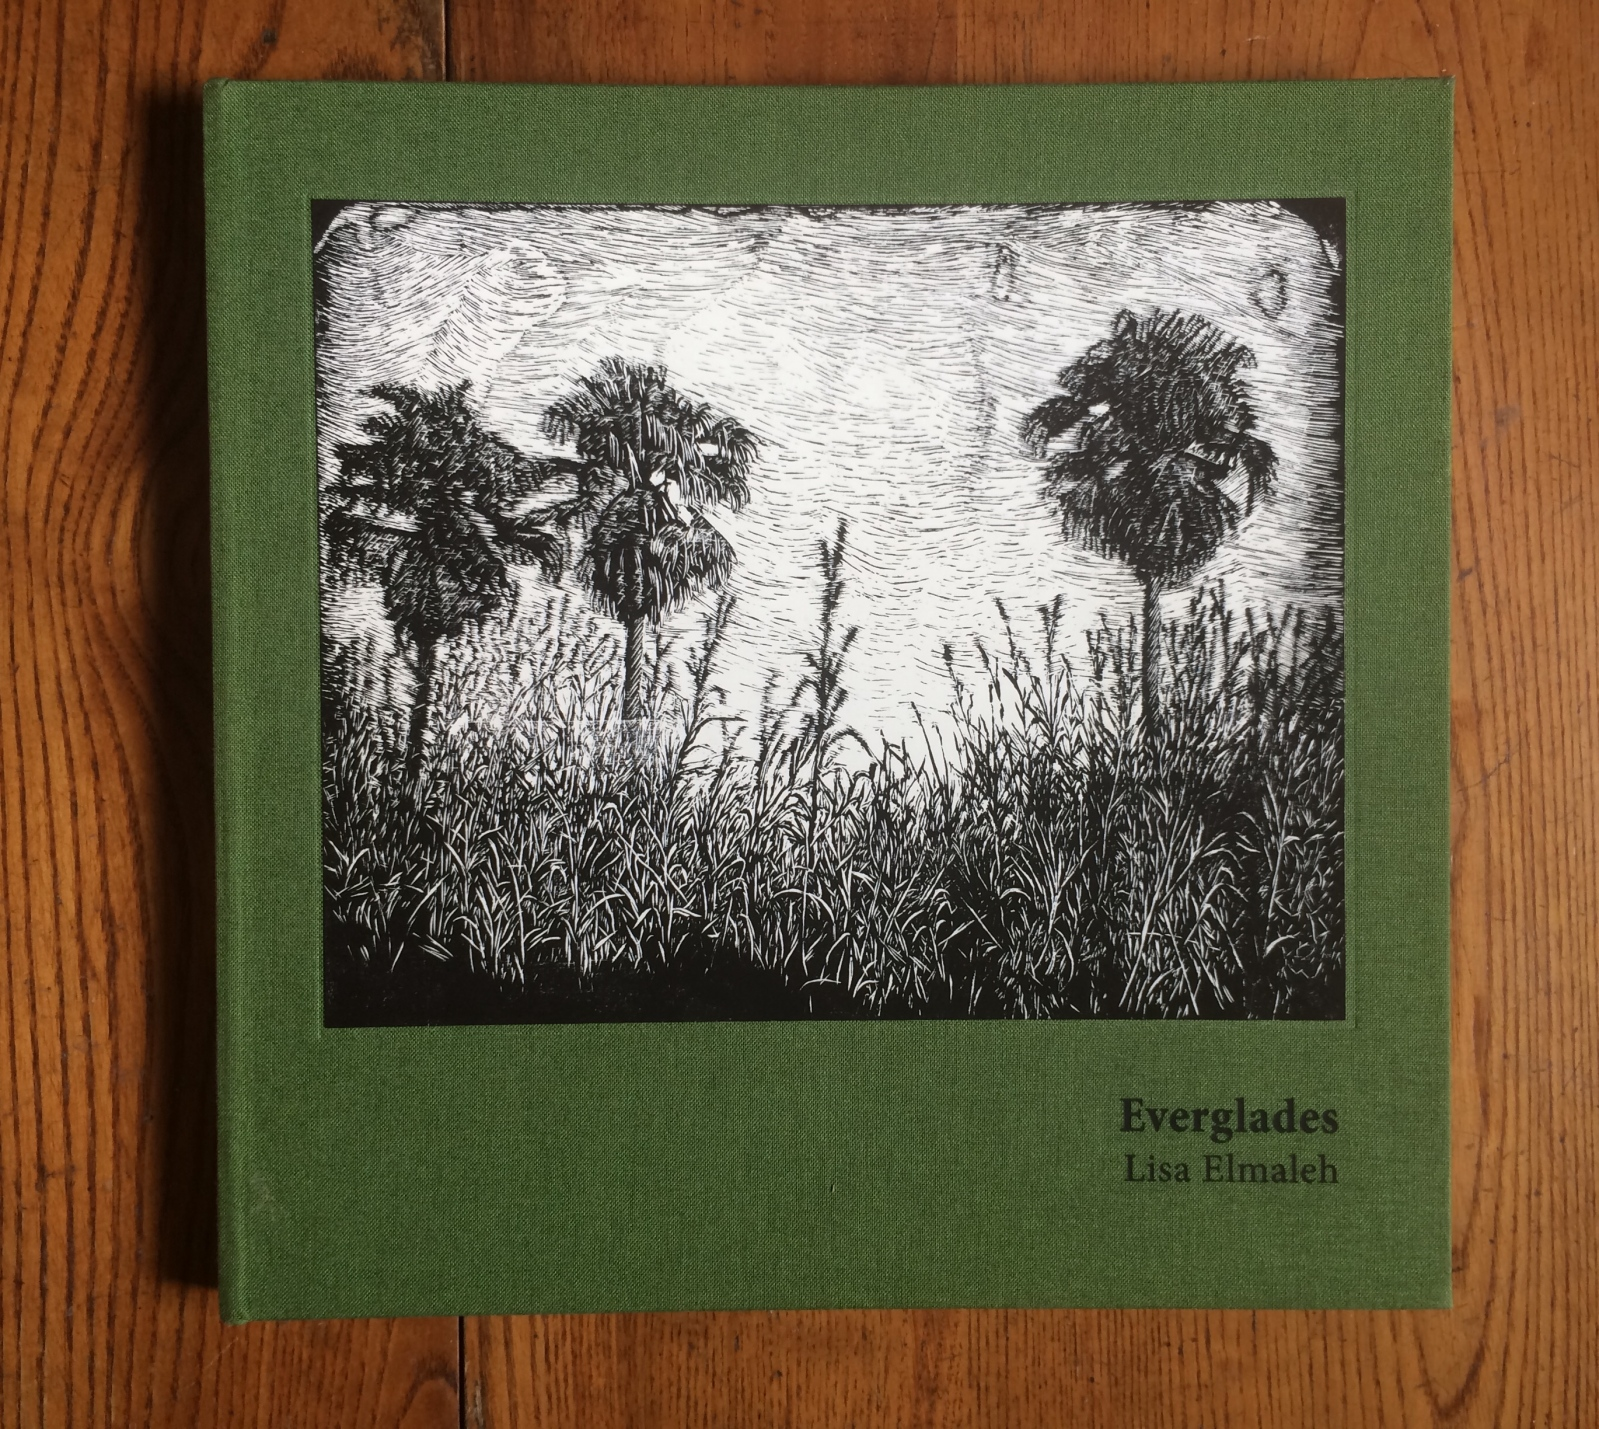 Art and Documentary Photography - Loading Everglades_Book_Cover.jpg